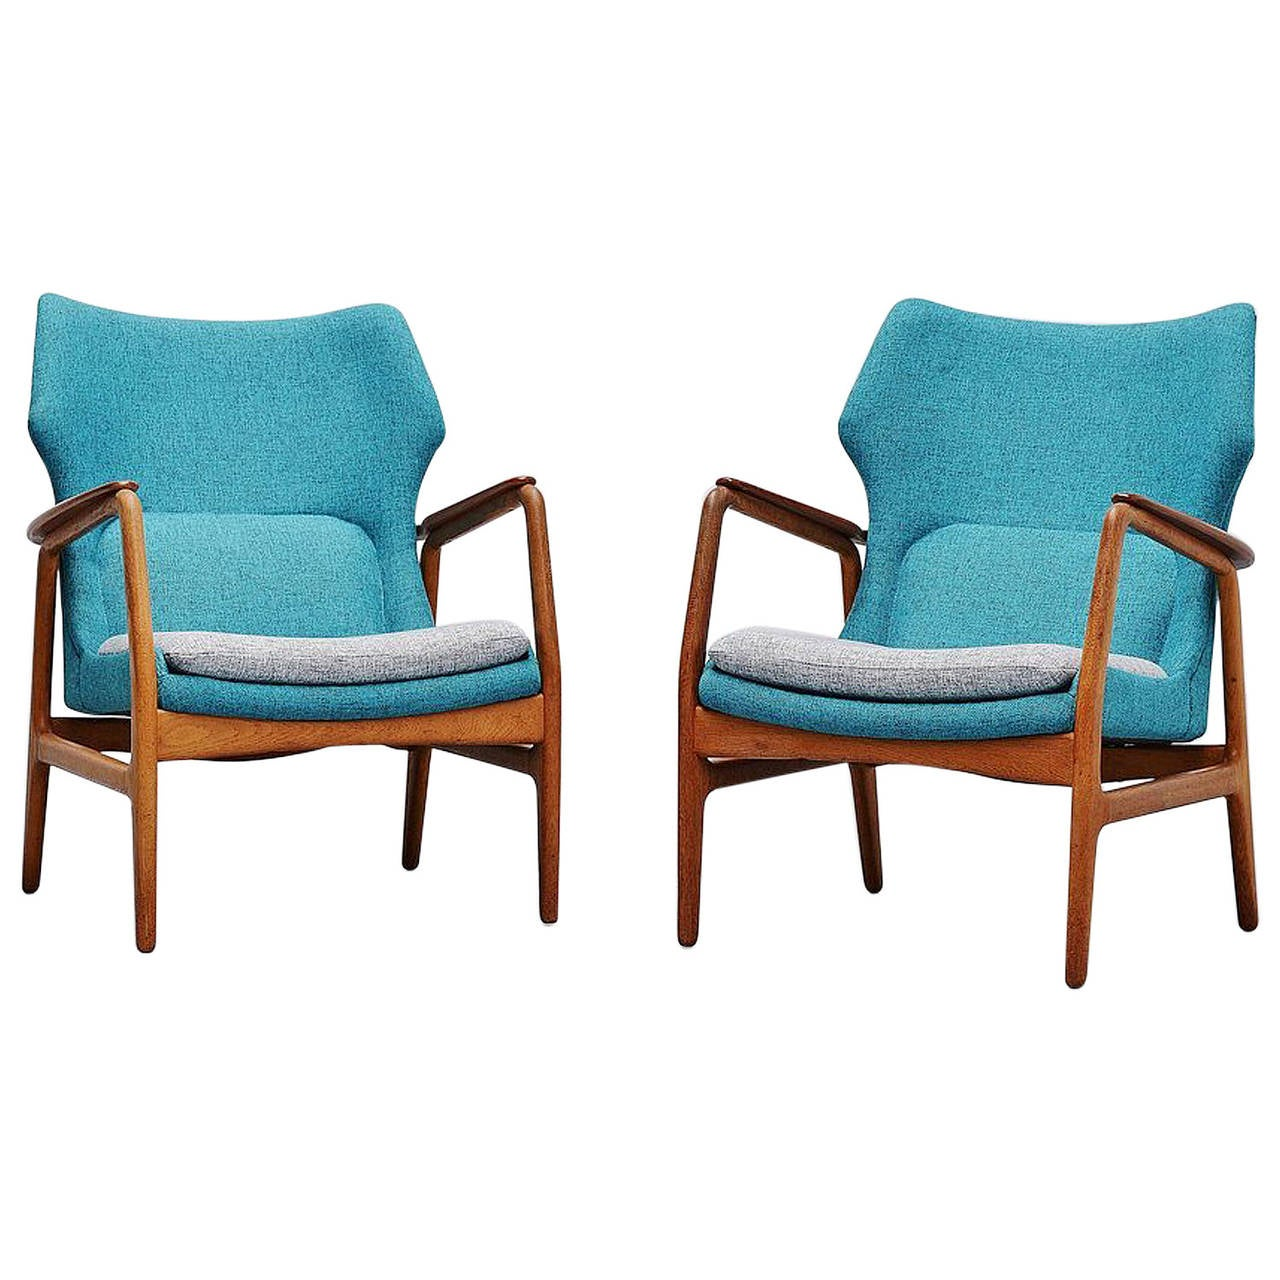 Aksel Bender Madsen Bovenkamp Lounge Chairs, Pair, 1960 For Sale at ...